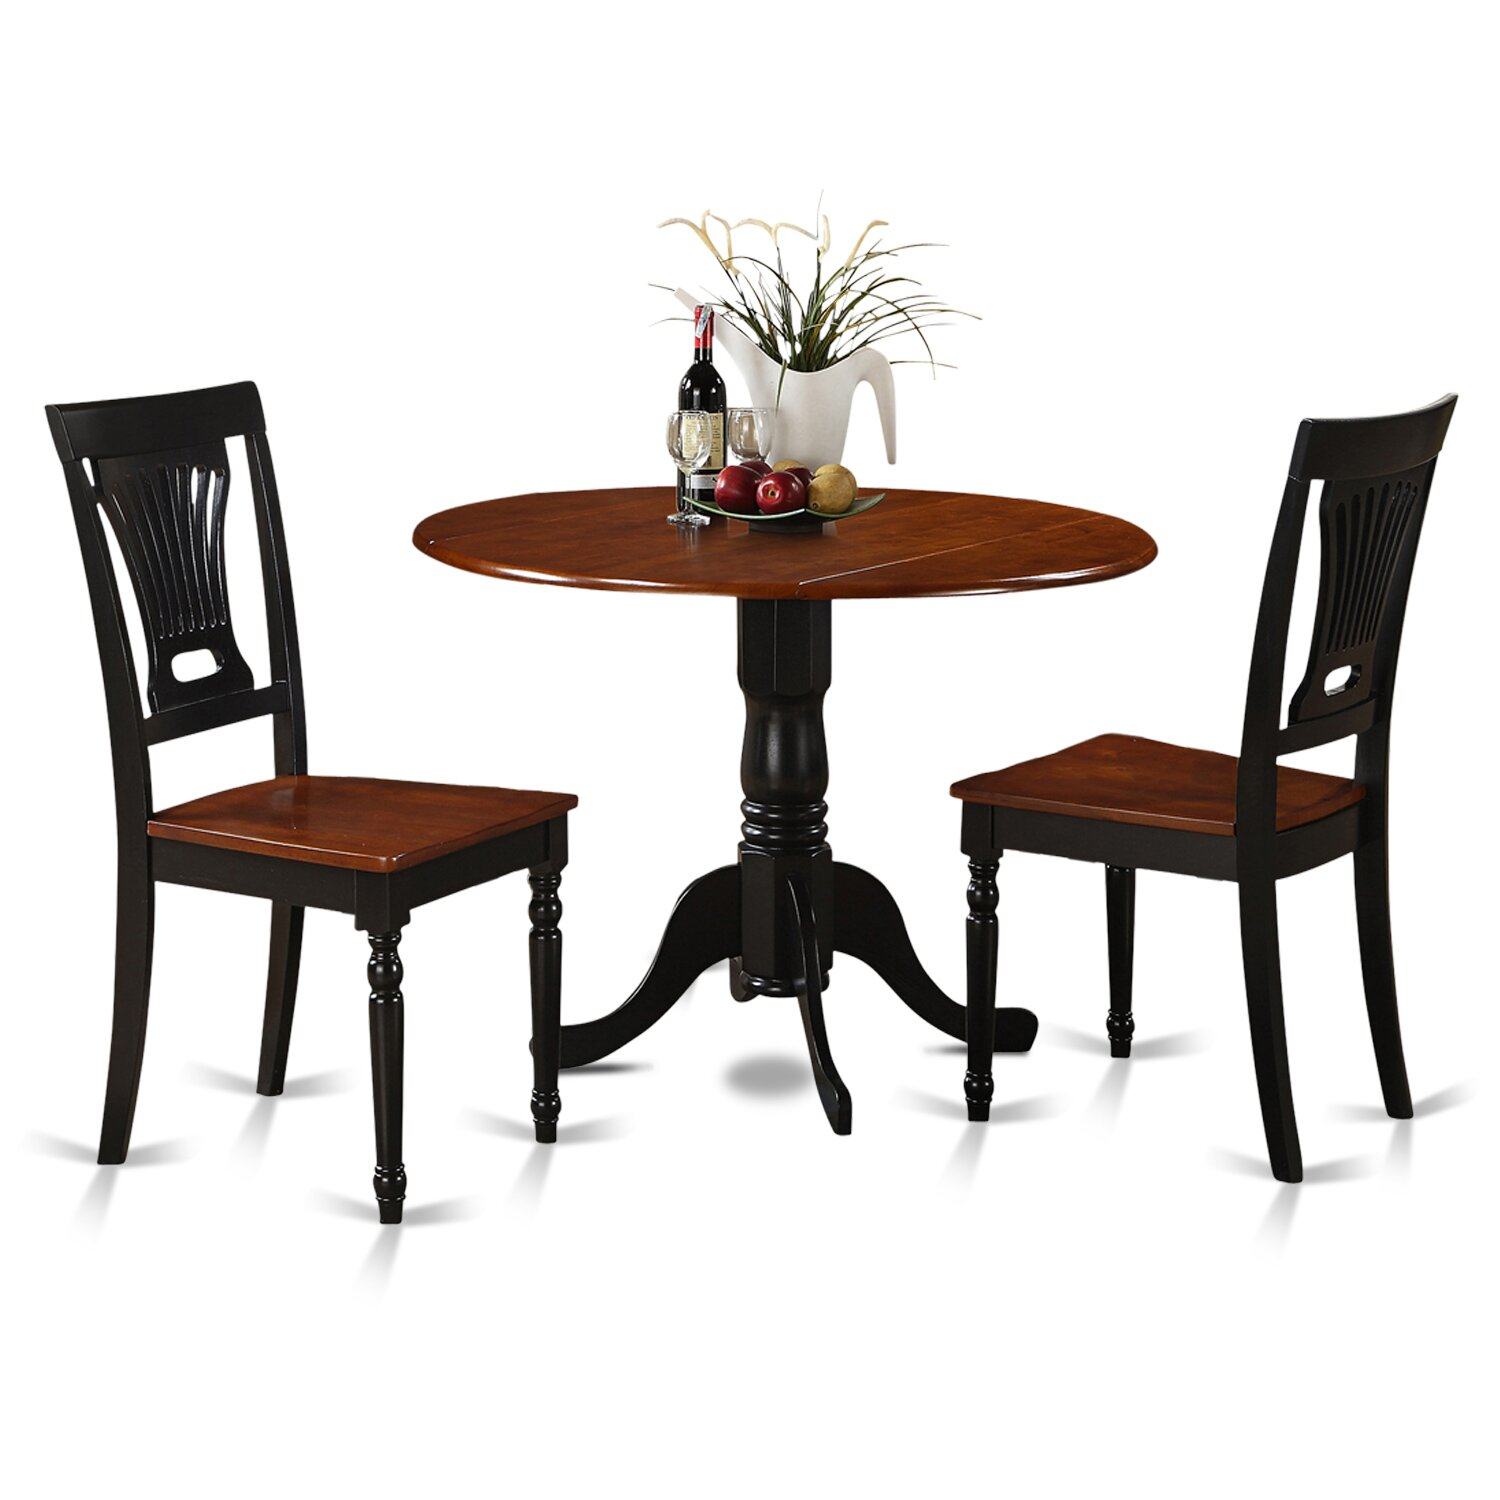 Wooden importers dublin 3 piece dining set reviews wayfair for Small kitchen furniture